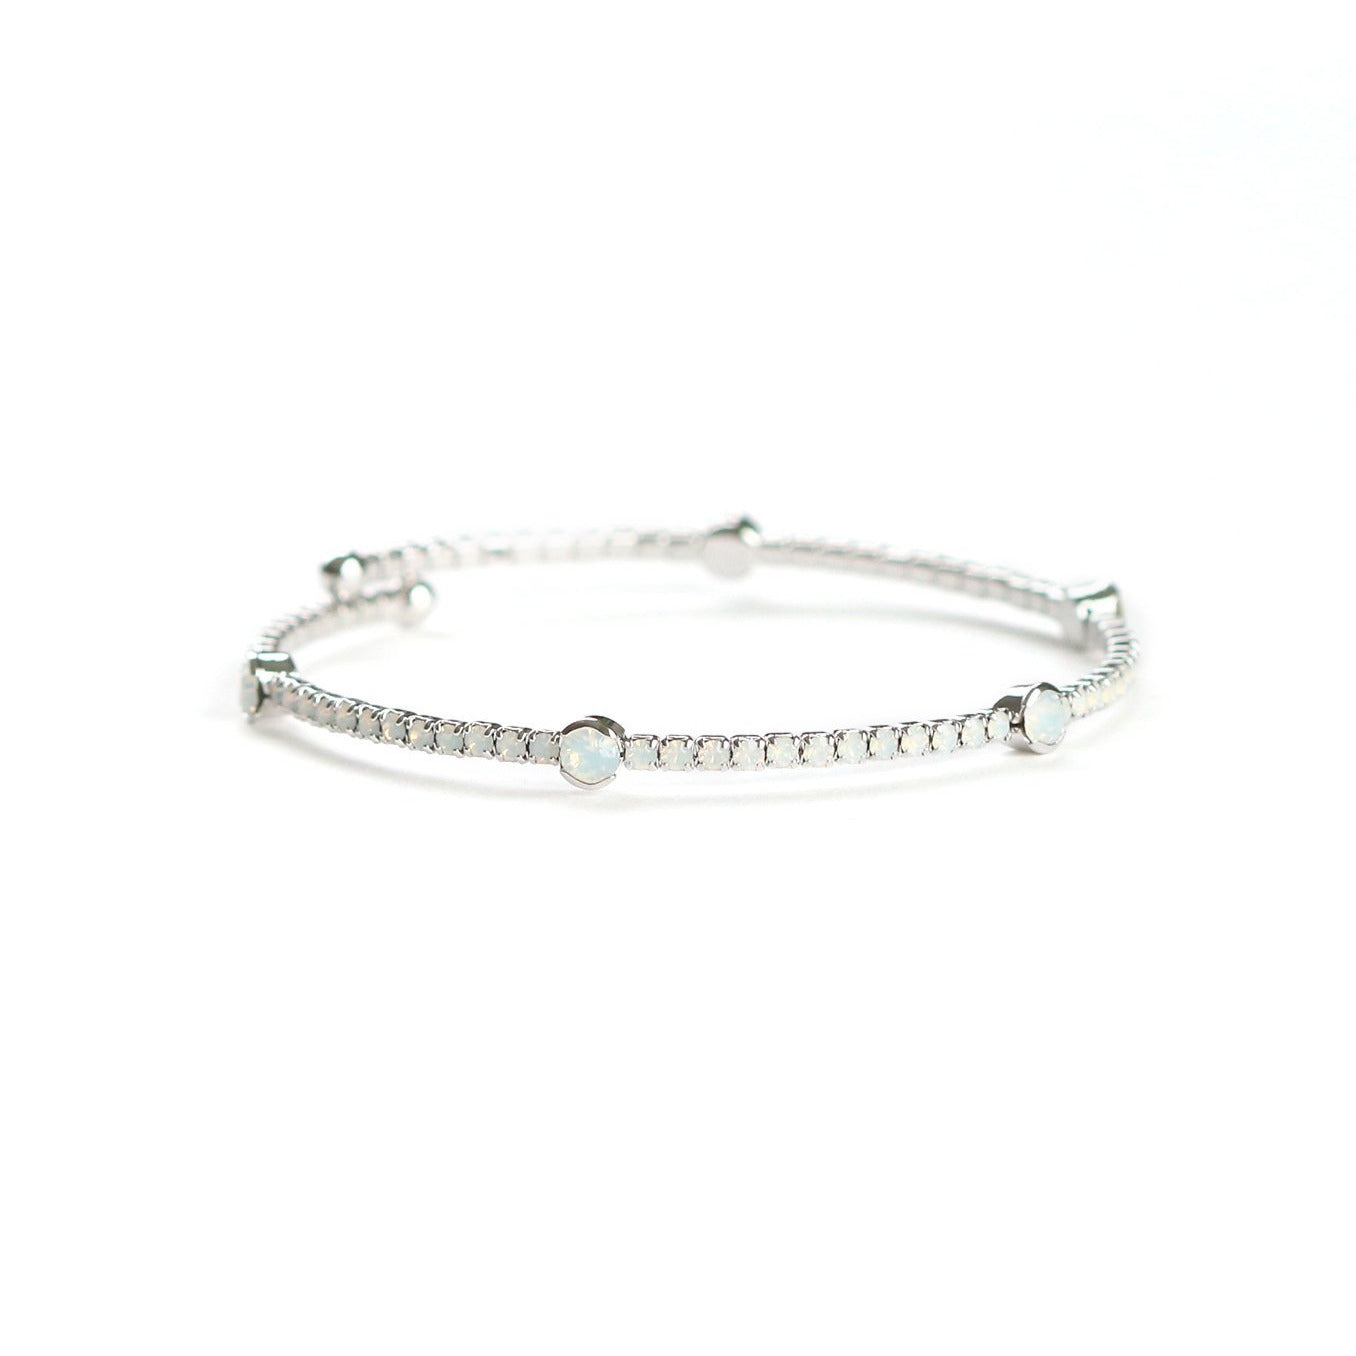 Constellation Bracelet White Opal/Silver